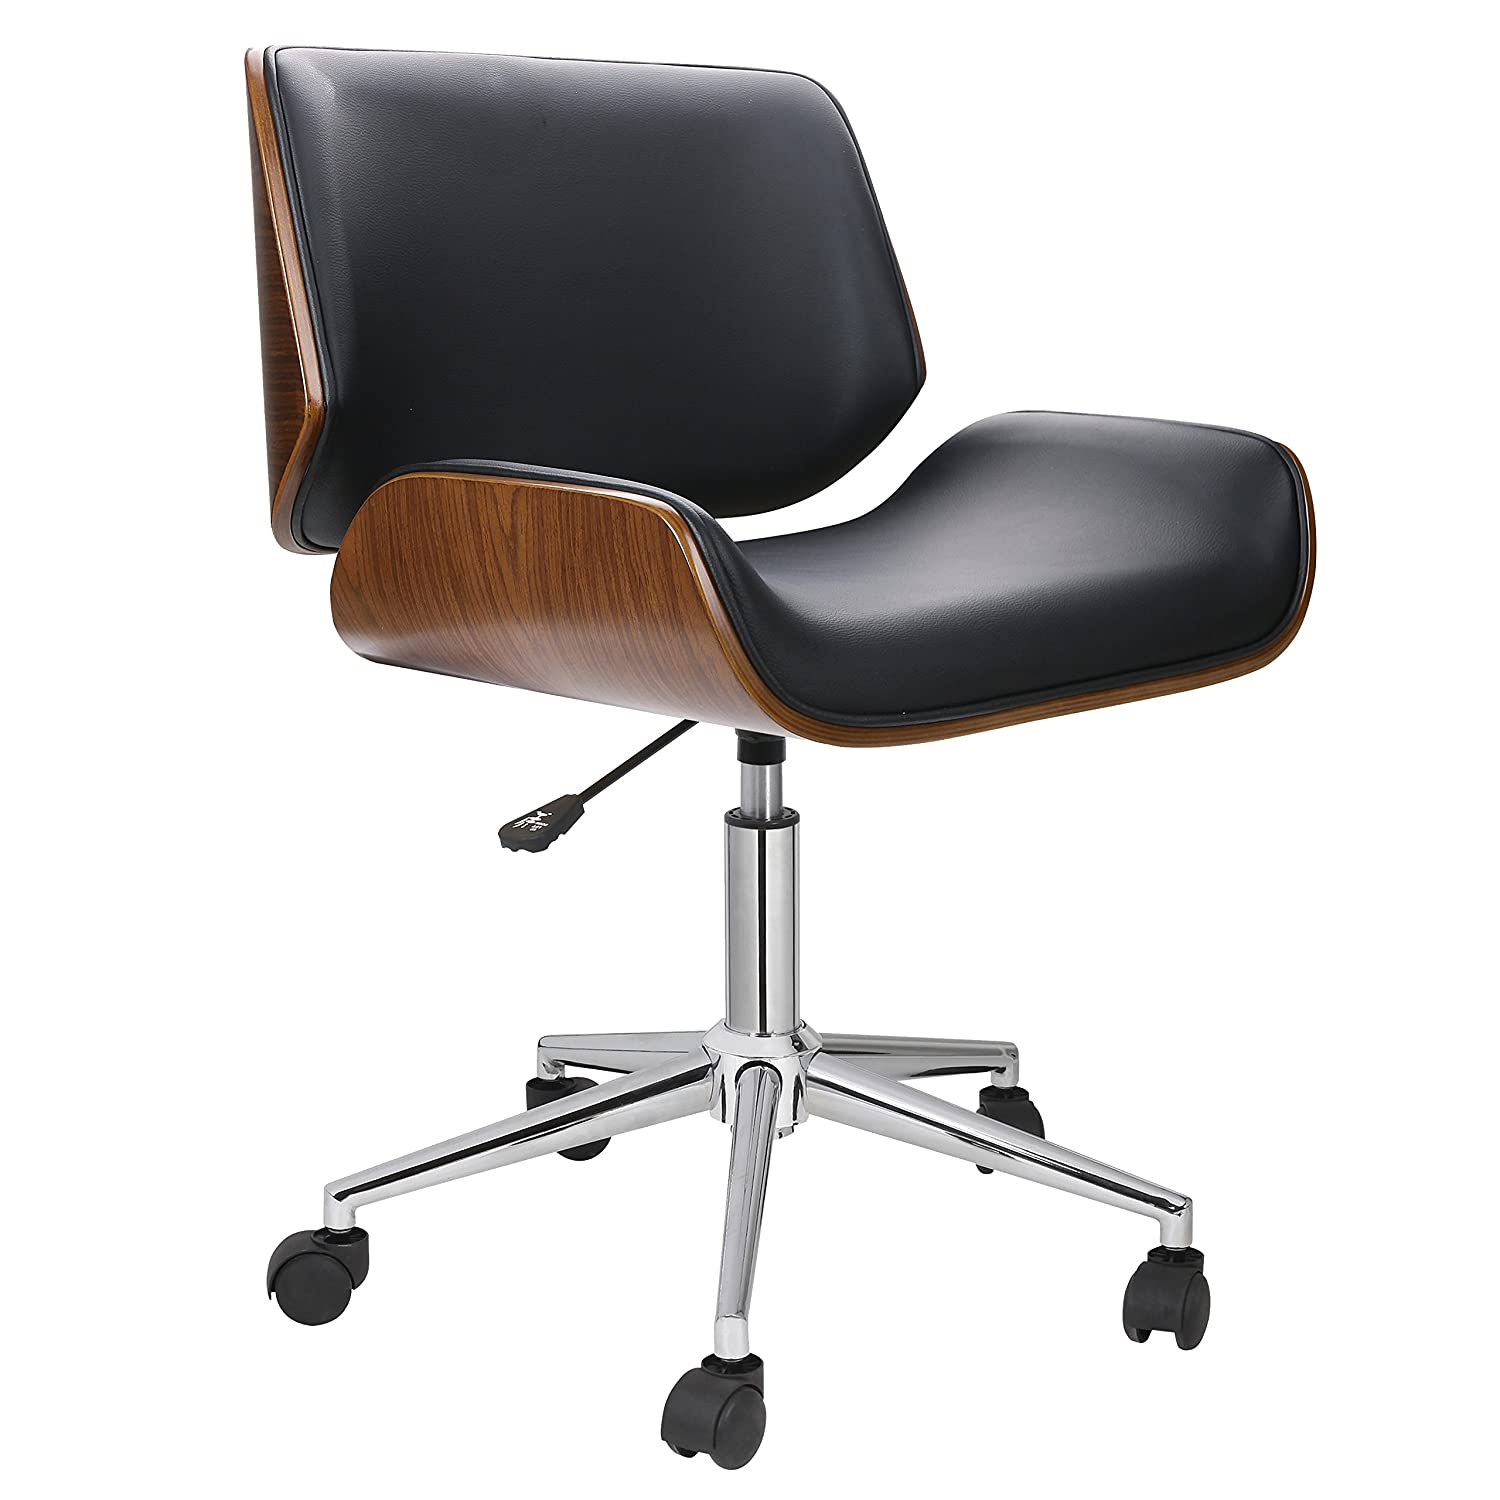 Porthos Home Dove Office Chairs in Mid-Century Modern Design with Leather  Upholstery, Wooden Accents, Stainless Steel Legs, Roller Wheels &  Adjustable ...